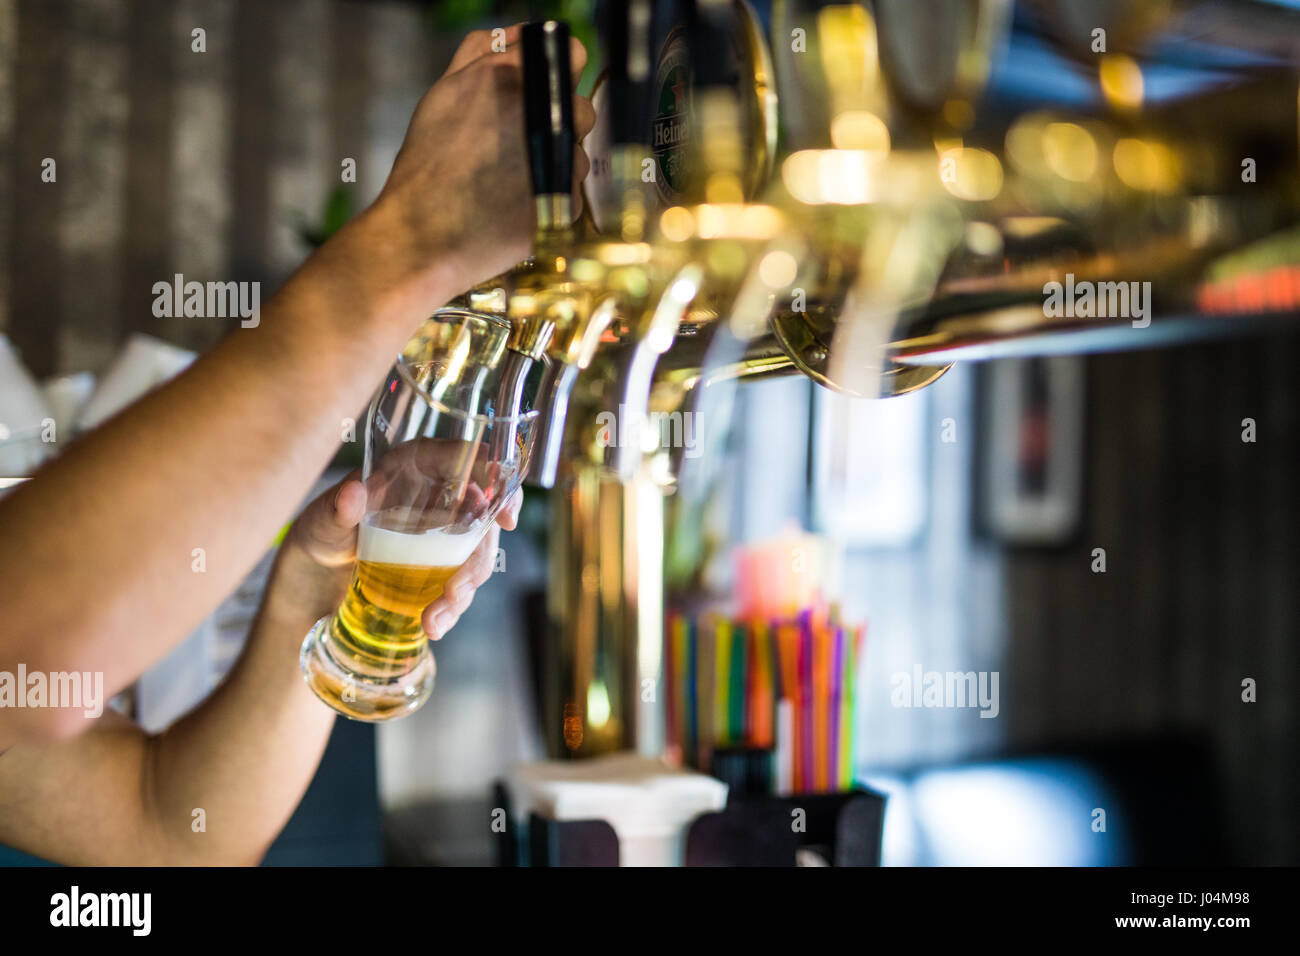 barman hand at beer tap pouring draught lager beer serving in a restaurant or pub. Stock Photo